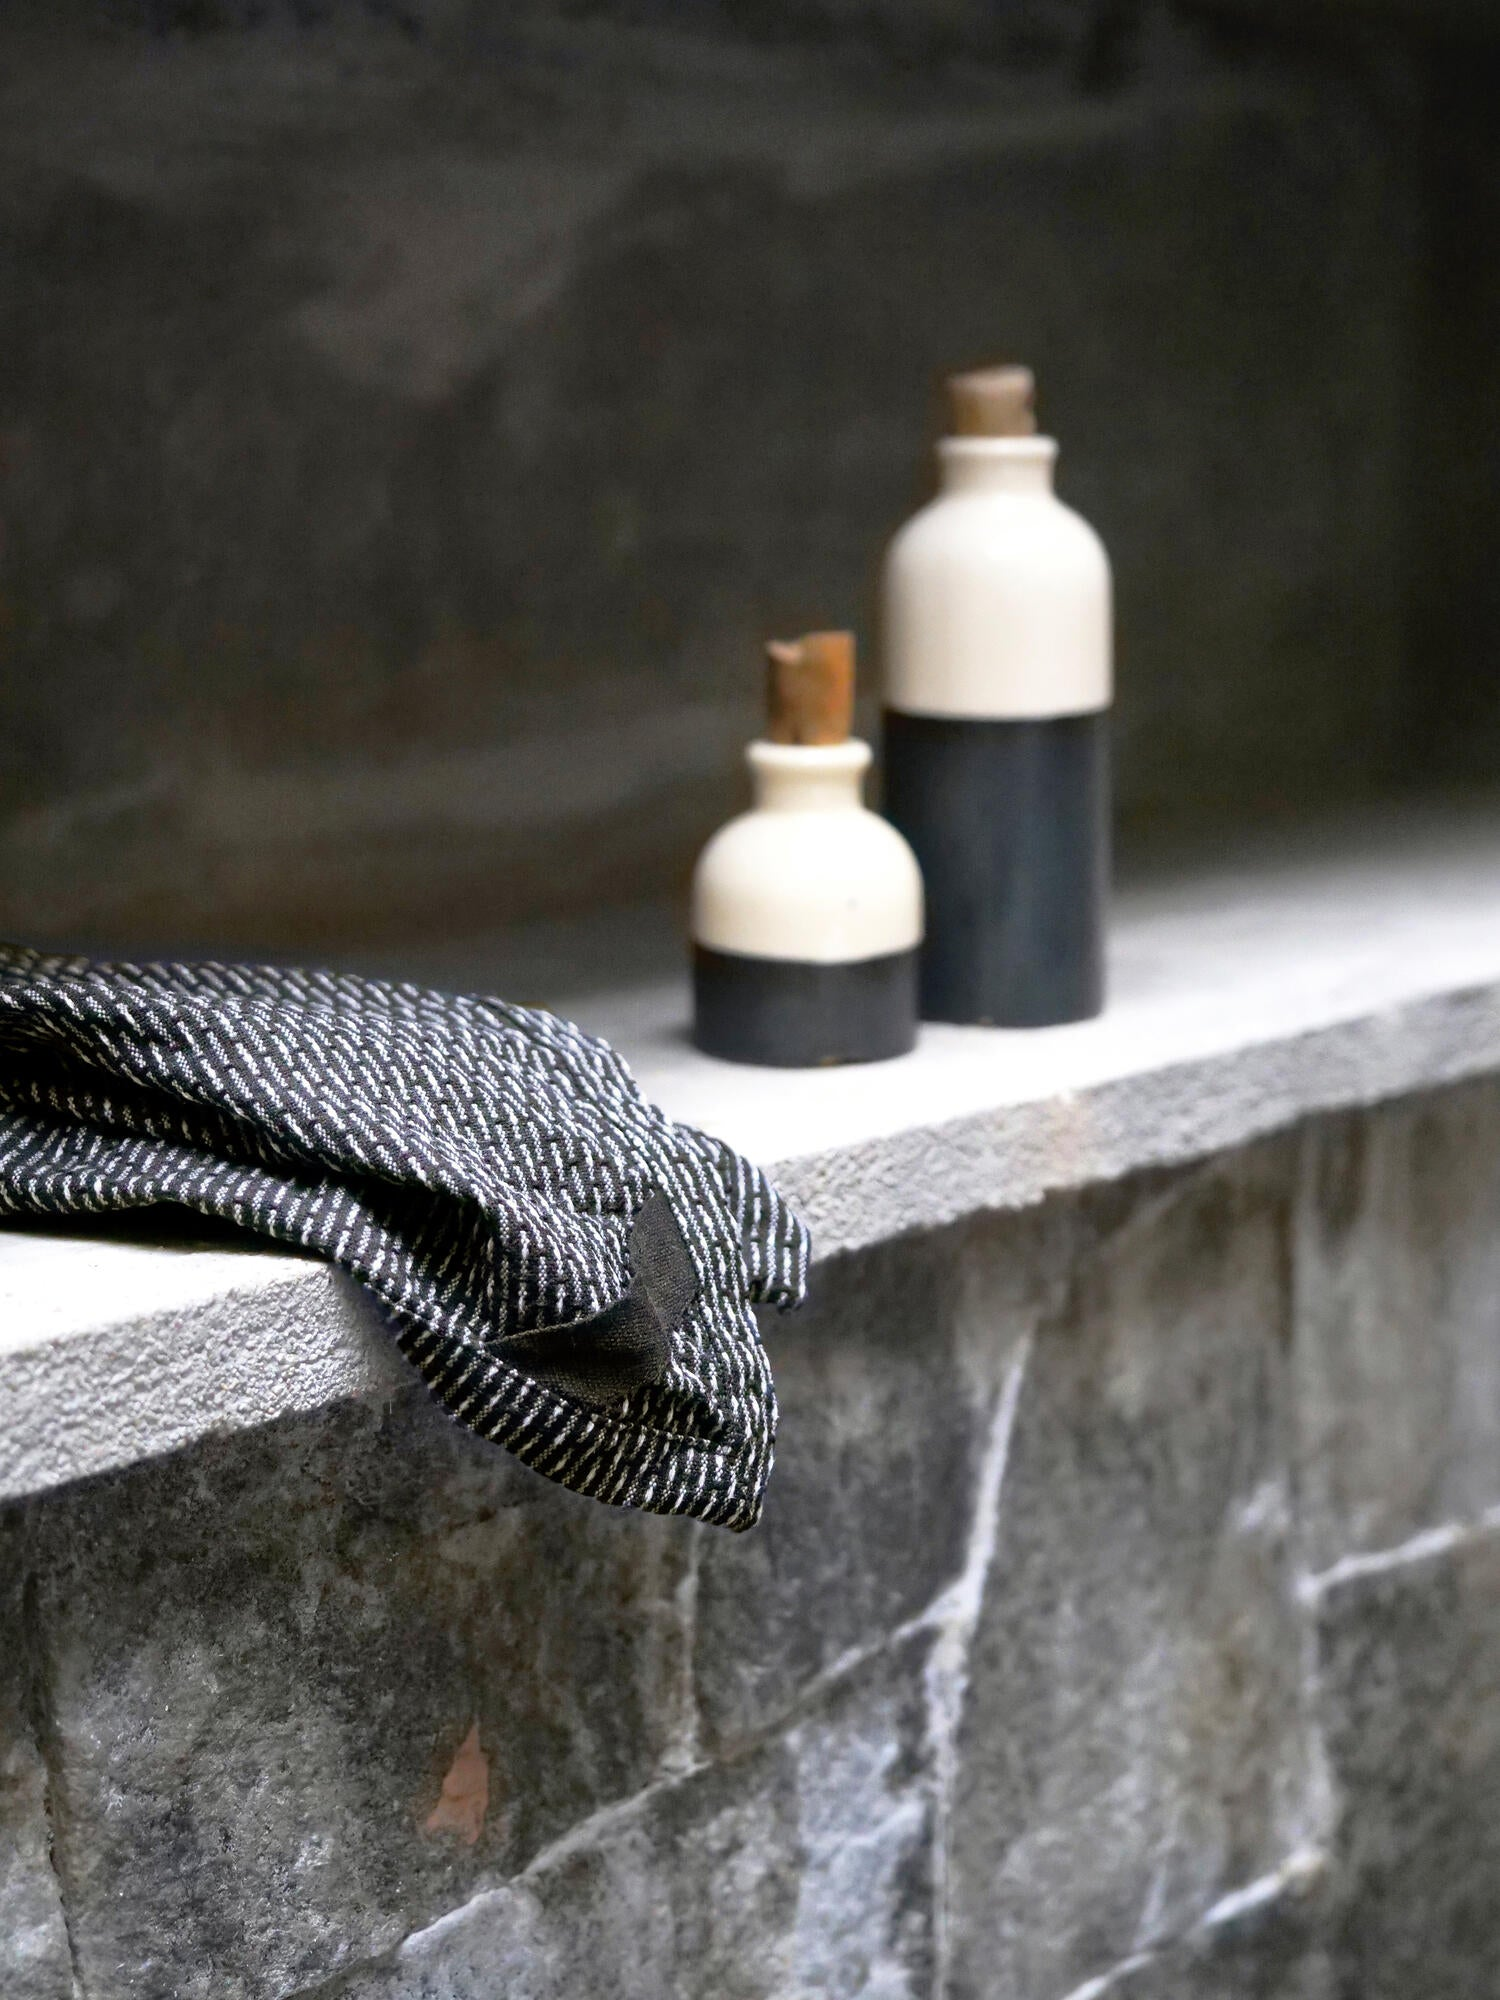 Stone shelf with ceramic bottles and grey cotton wash cloth